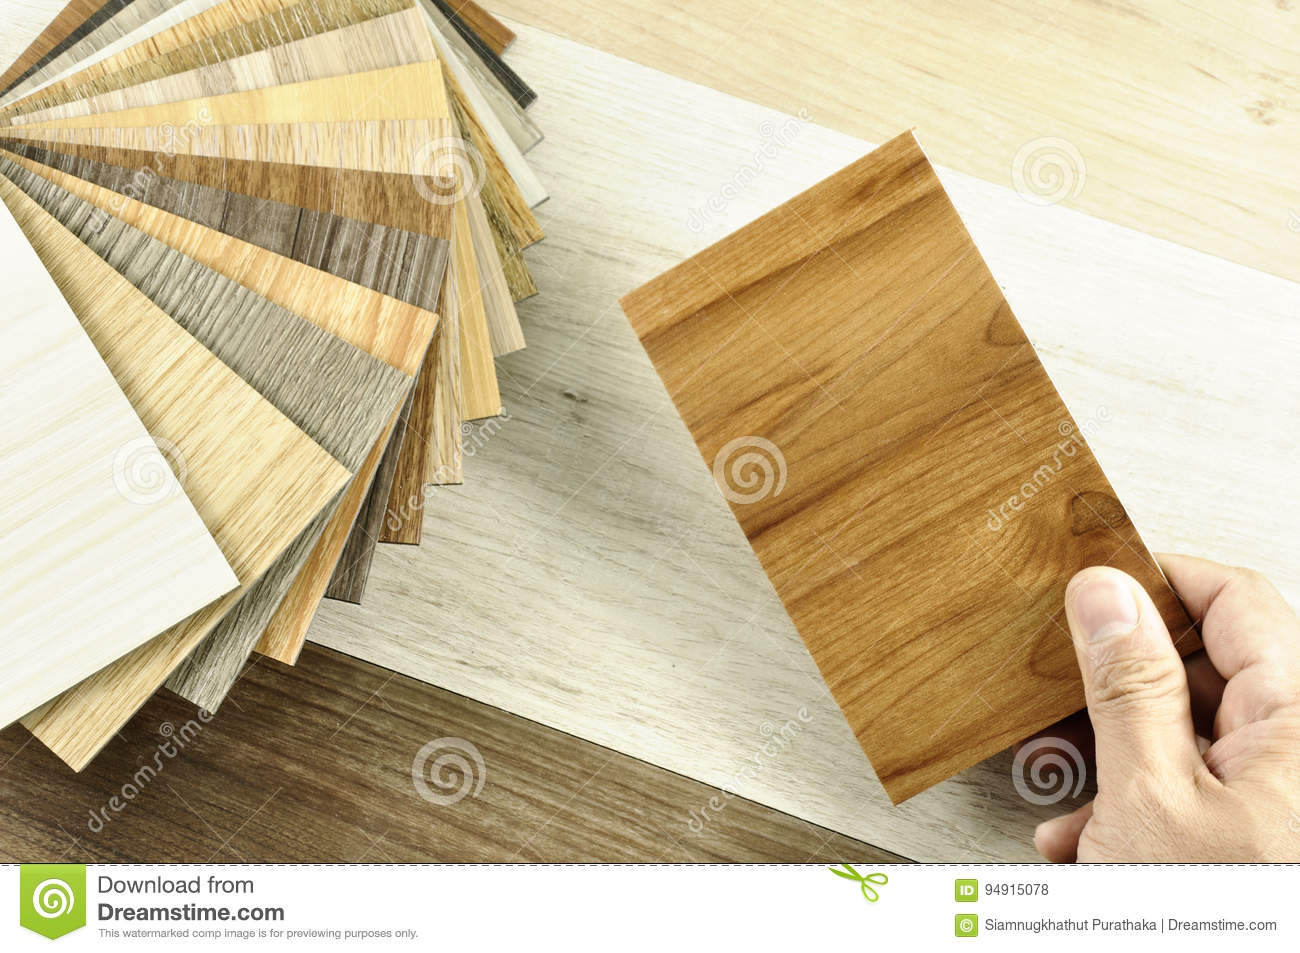 Top view of Architects & Interior designers hands pick up material on table in workplace in the morning. home renovation concept